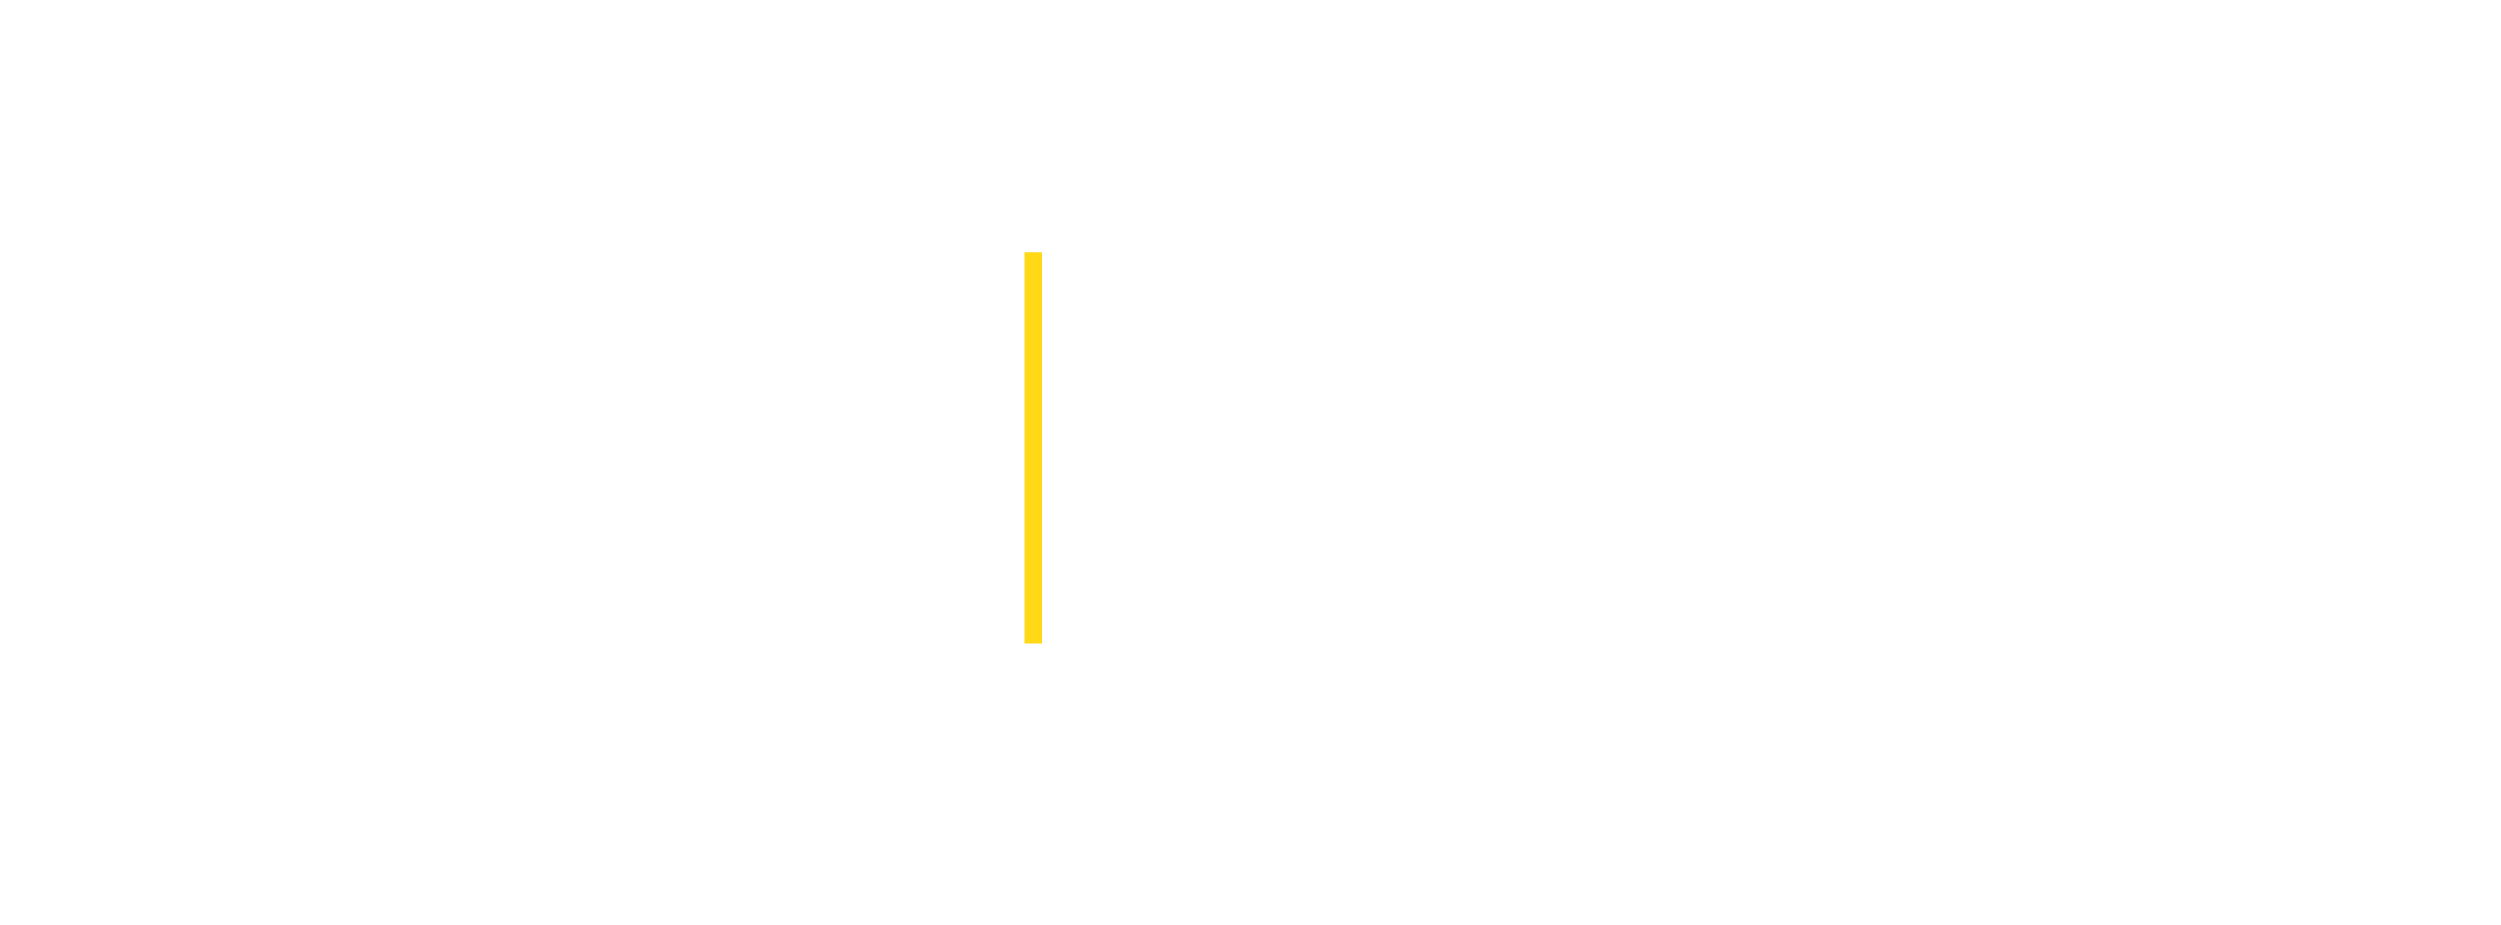 rpm-realty-2020